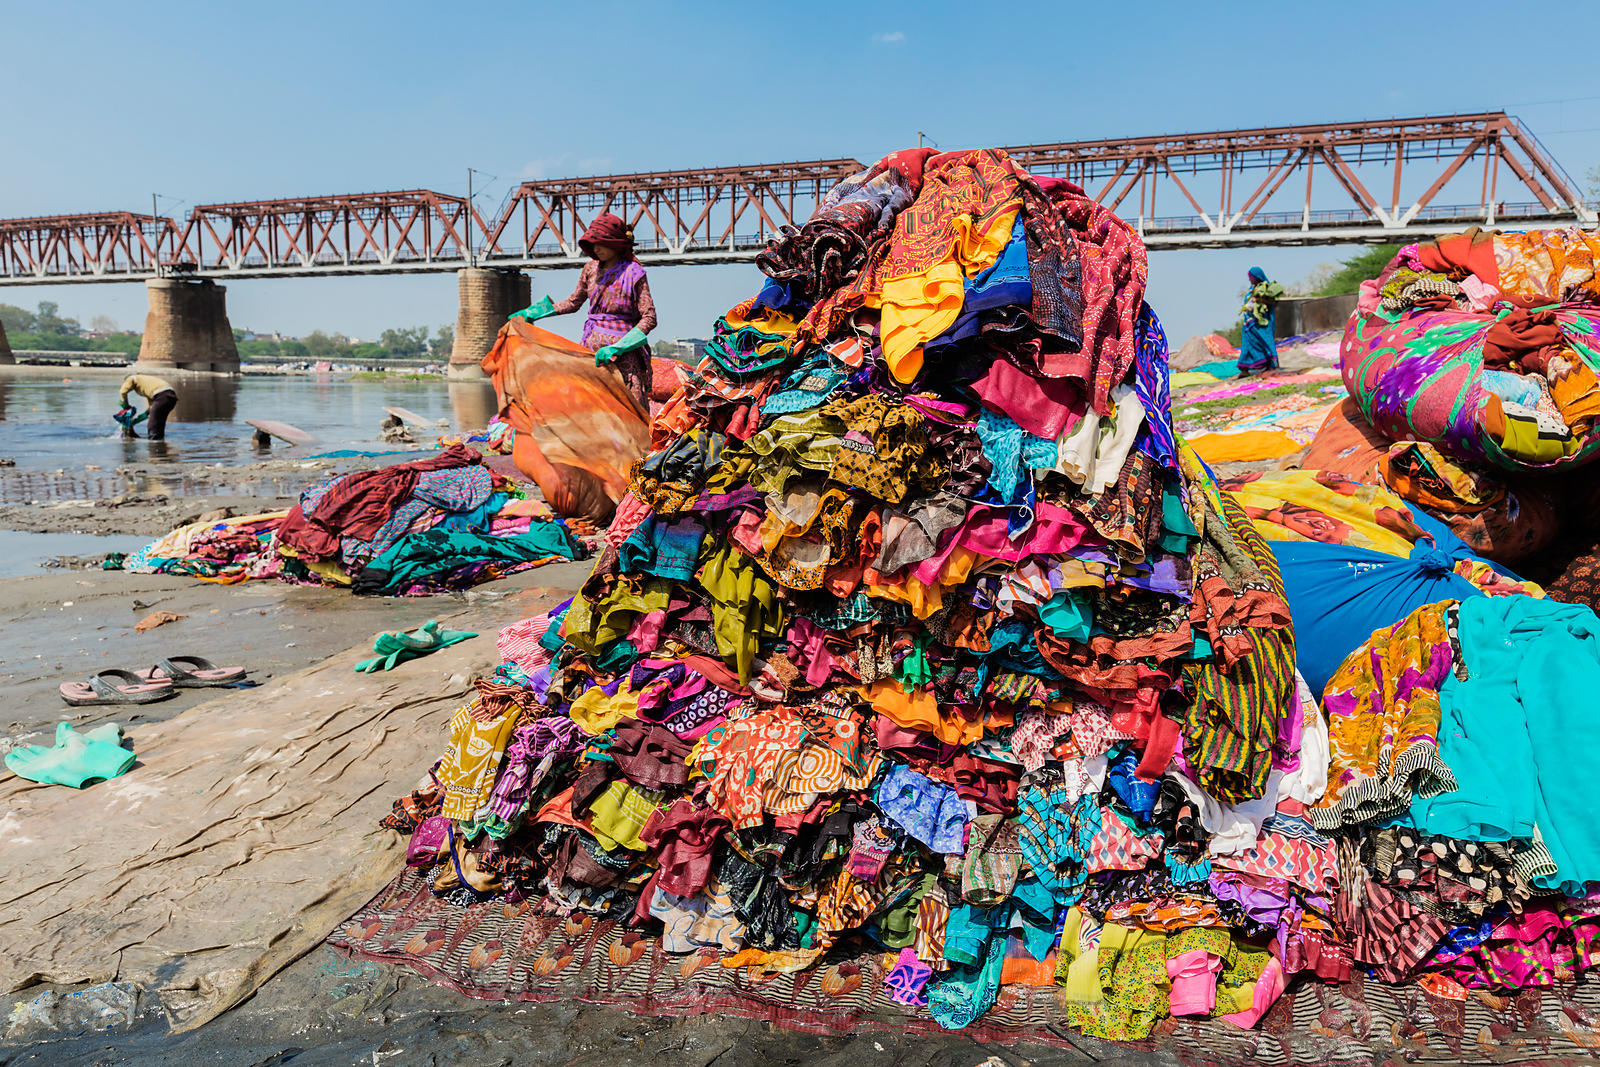 Saris after being Washed at the Dhobi Ghat on the Bank of the Yamuna River